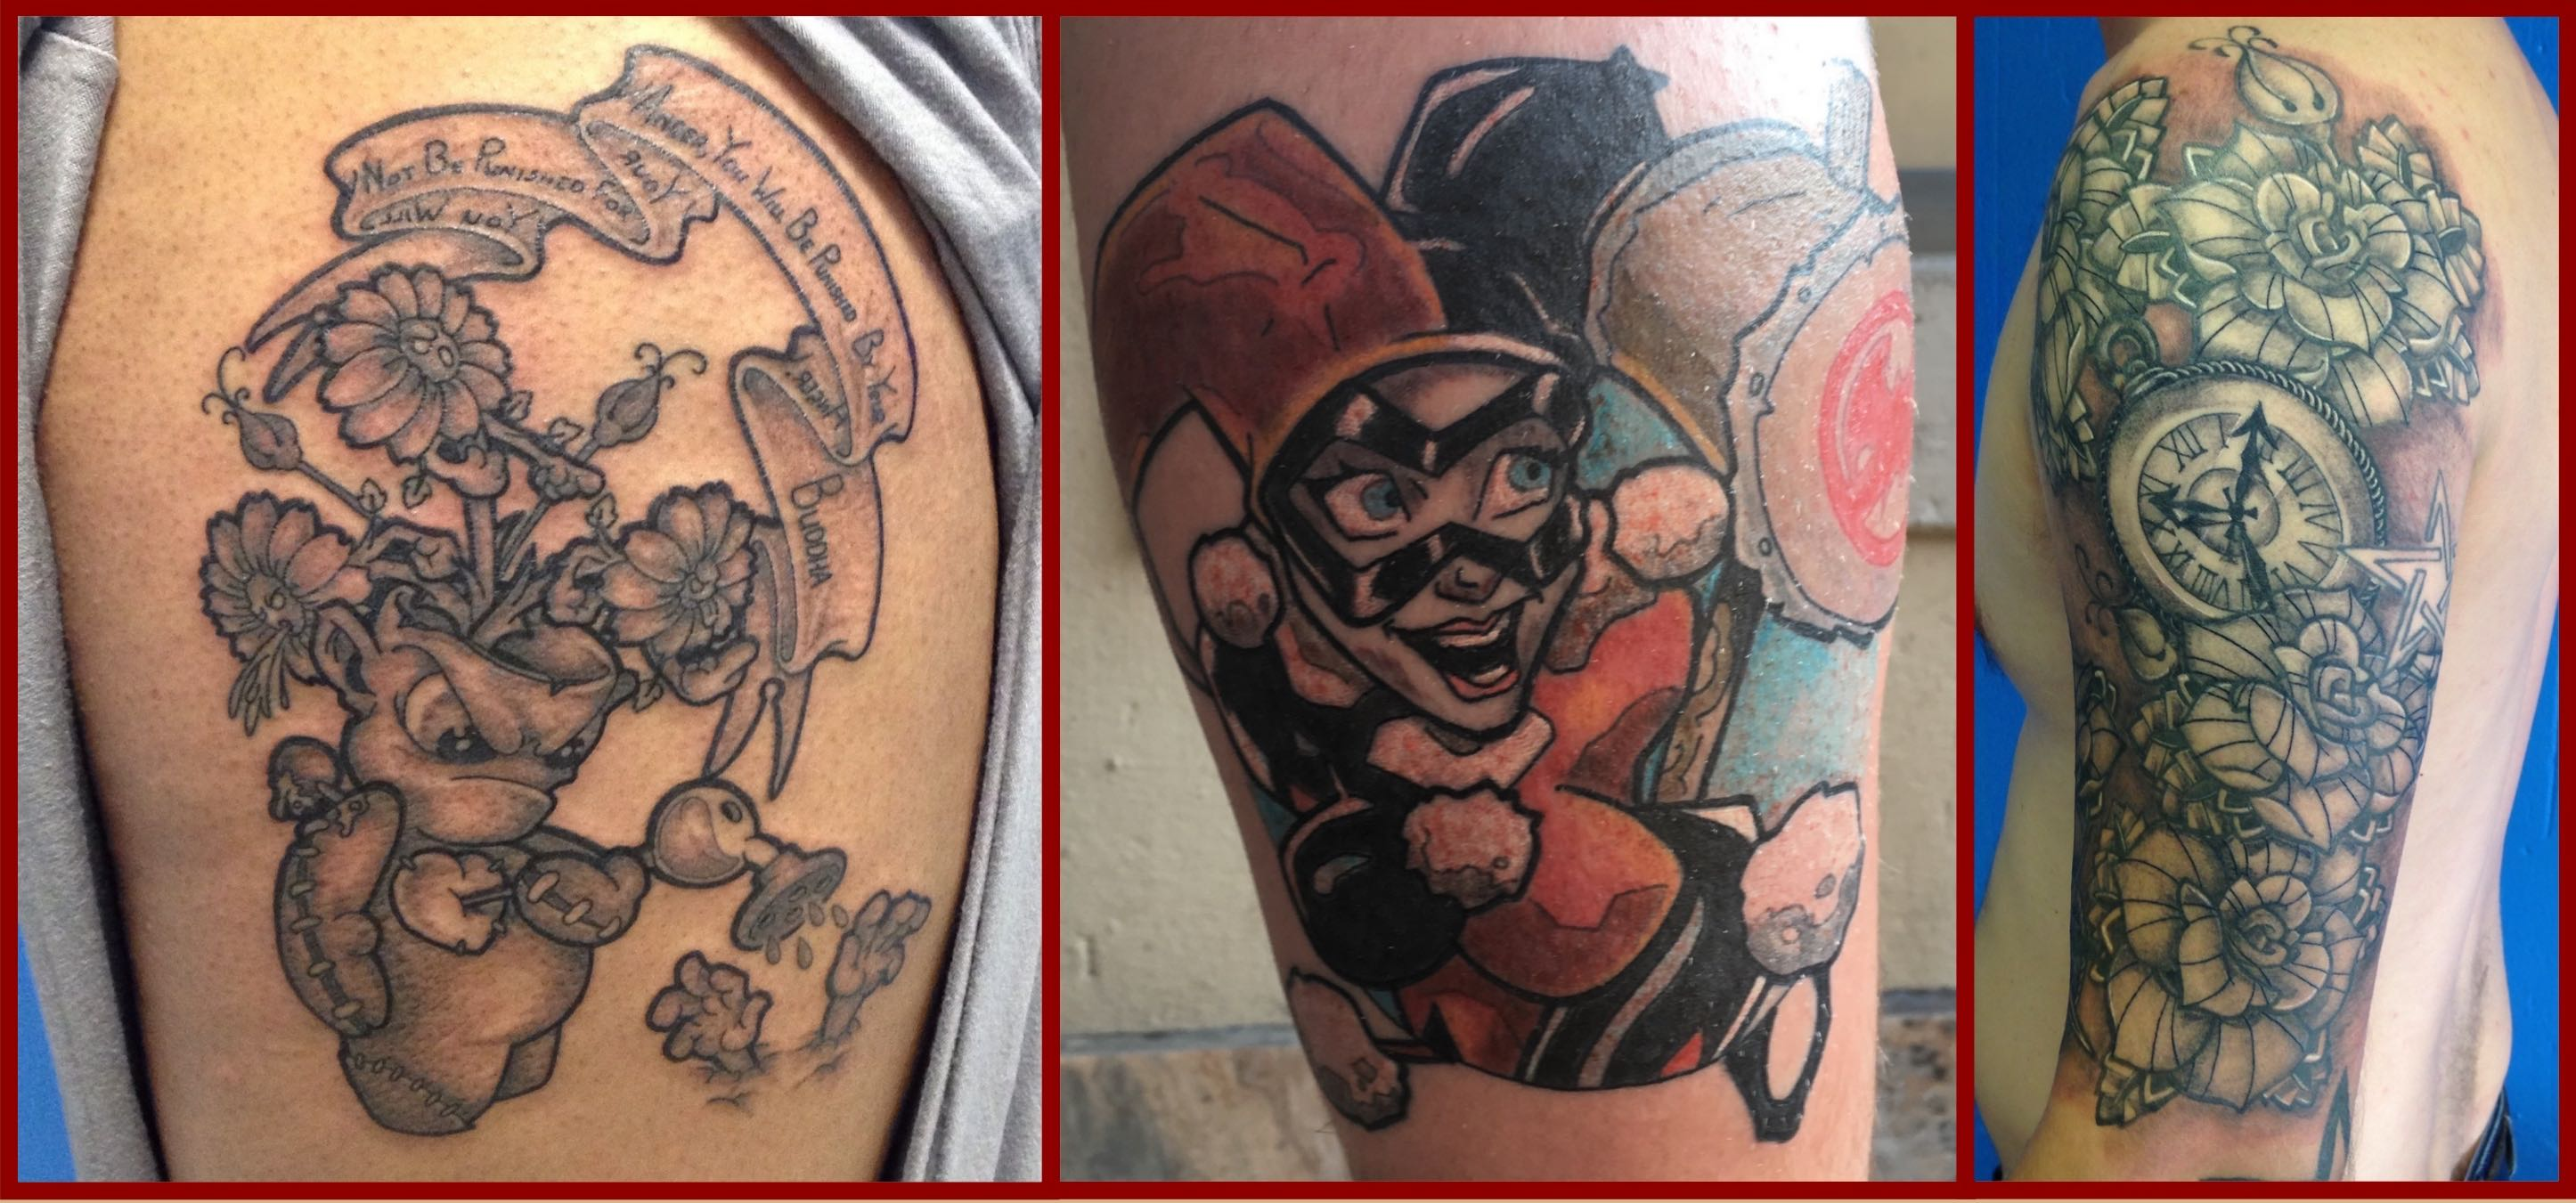 A selection of tattoos done by Tattoo Artist Alastair Magee